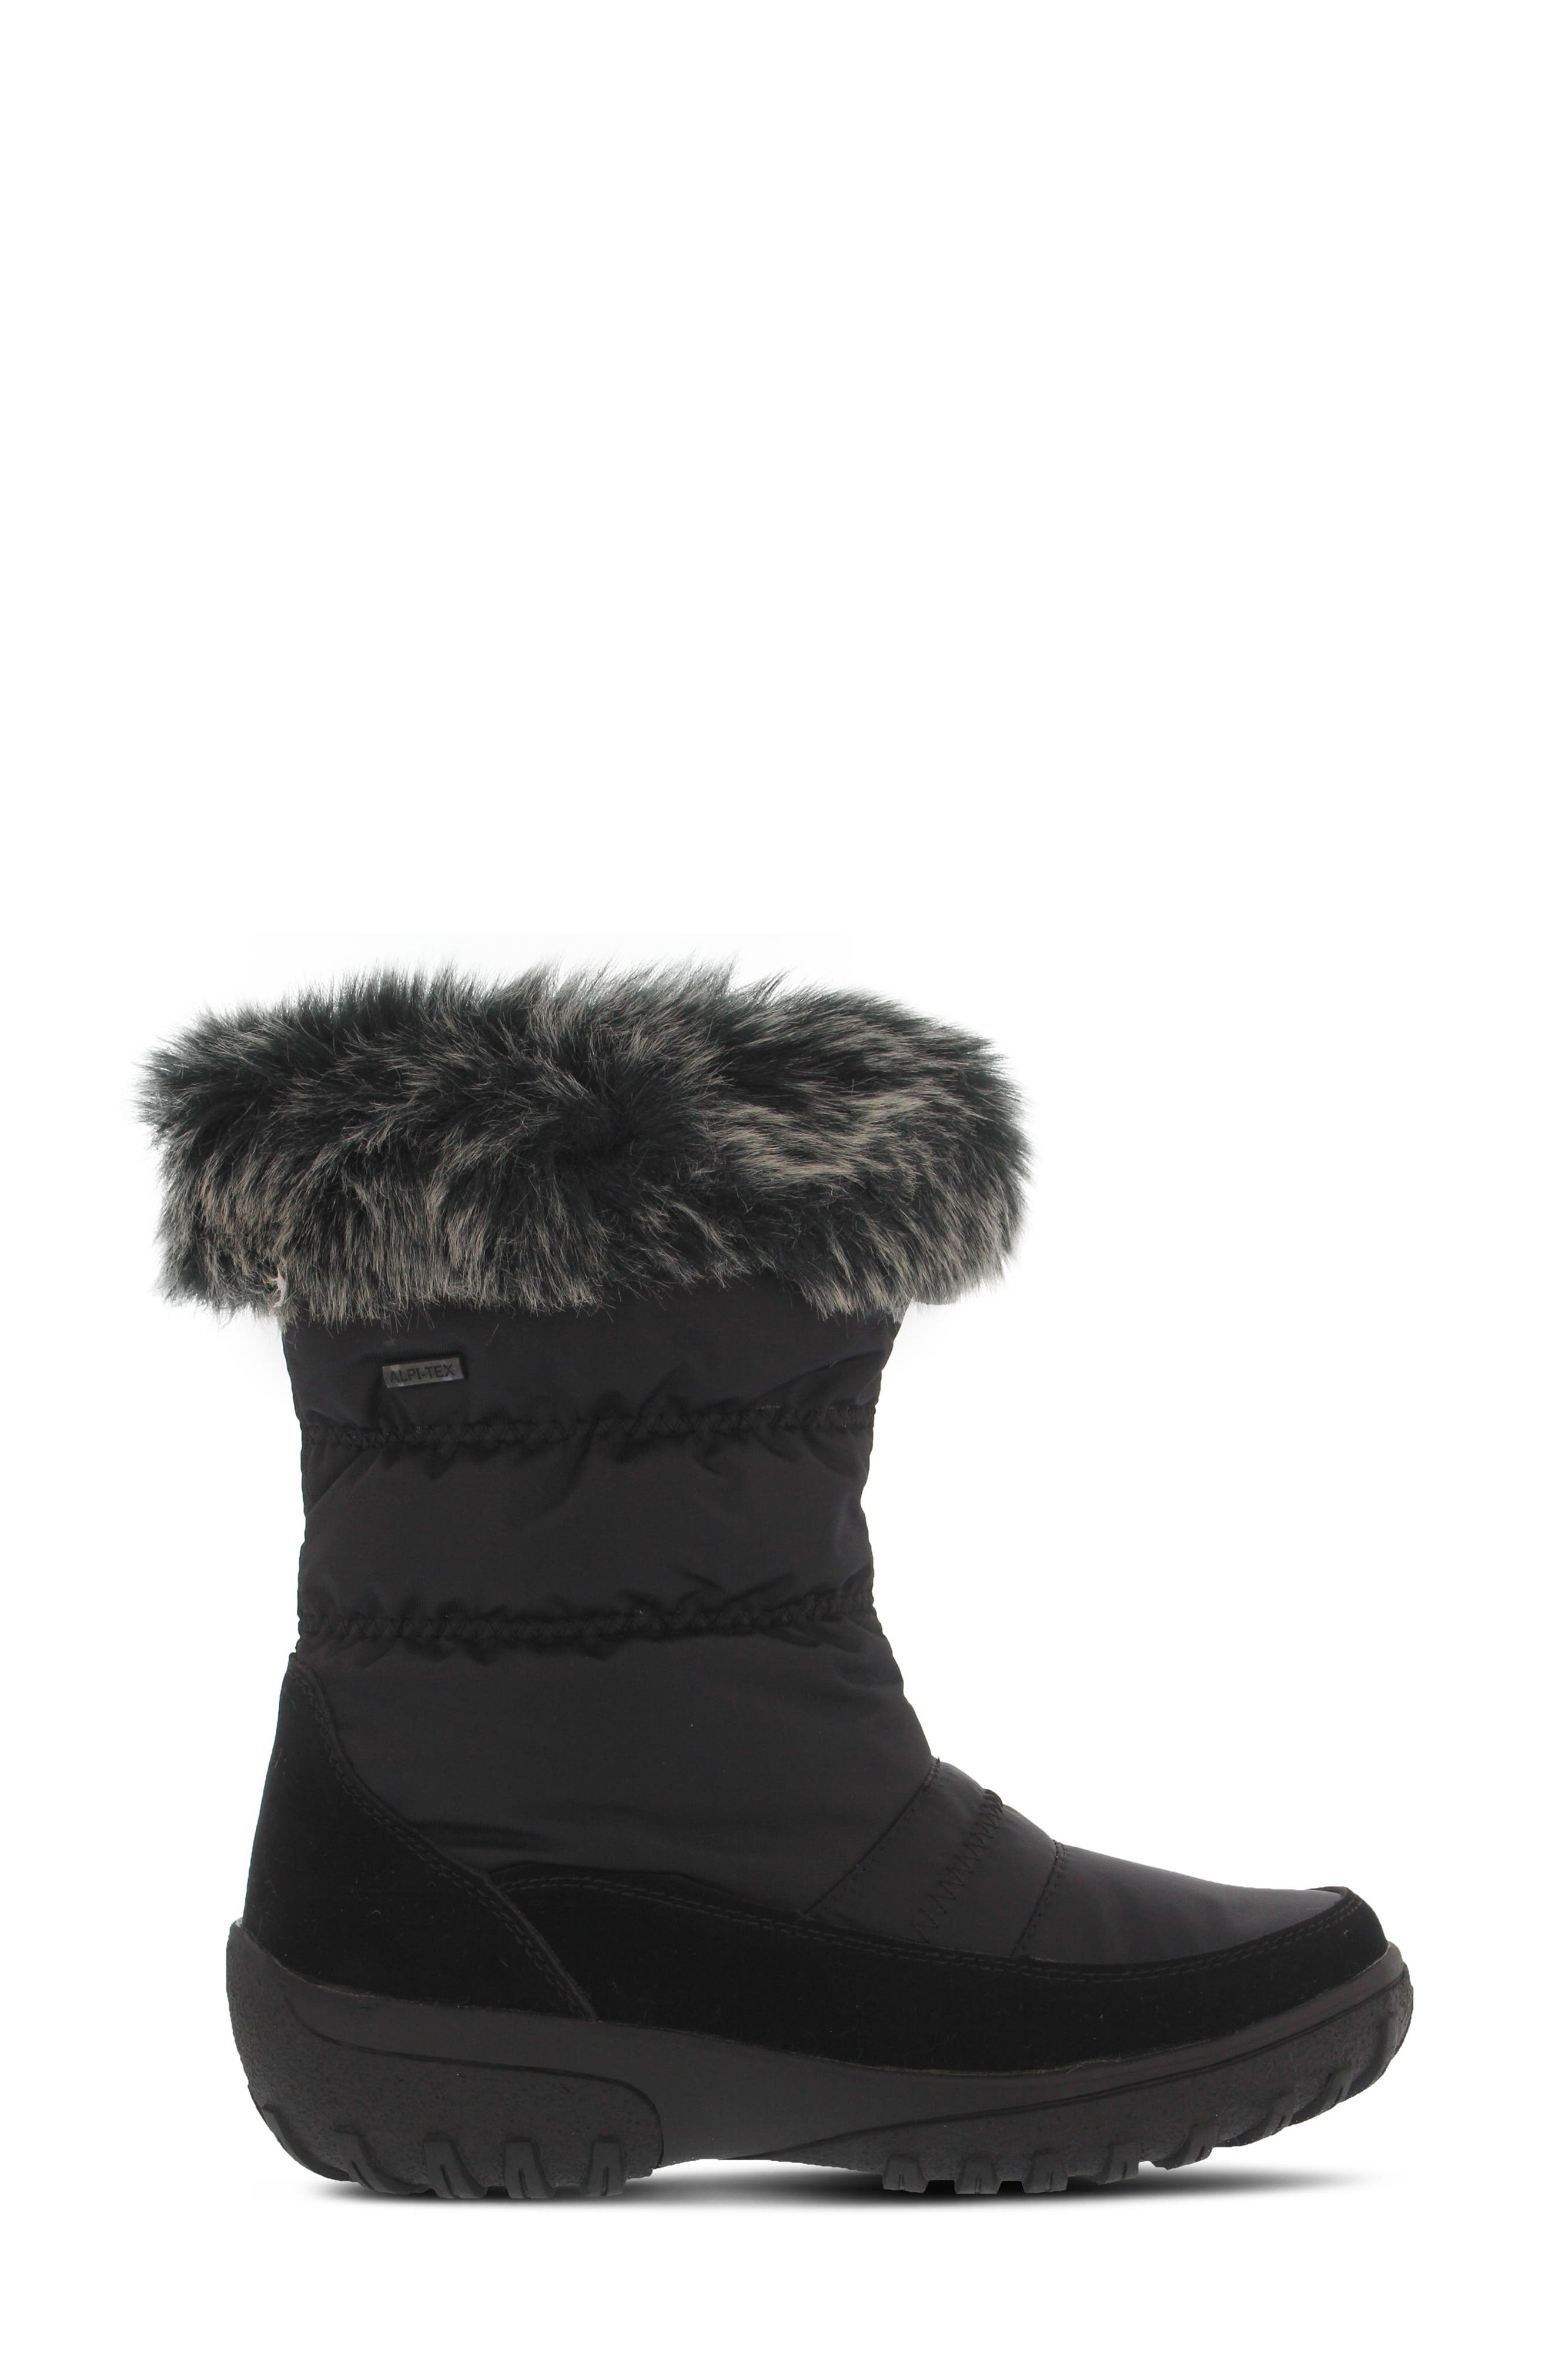 Rolim Faux Fur Trim Waterproof Boot,                             Alternate thumbnail 3, color,                             Black